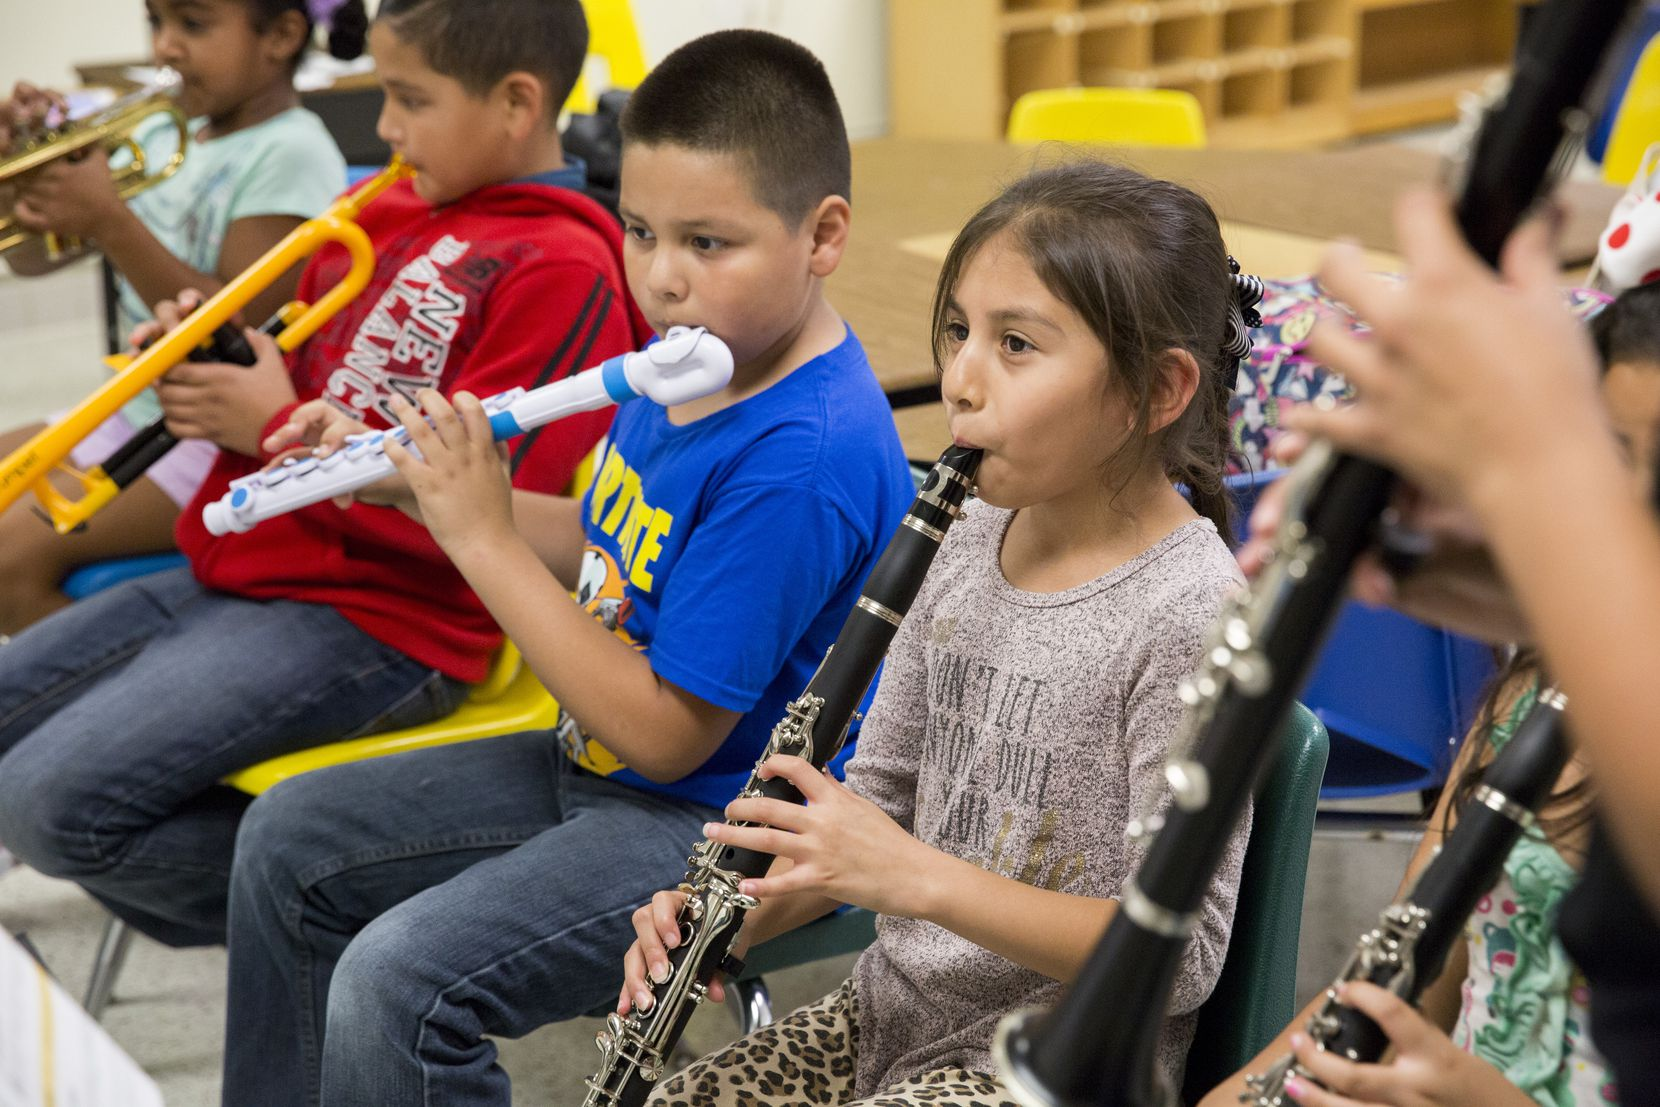 Students learn instruments as part of the DSO Young Musicians program.